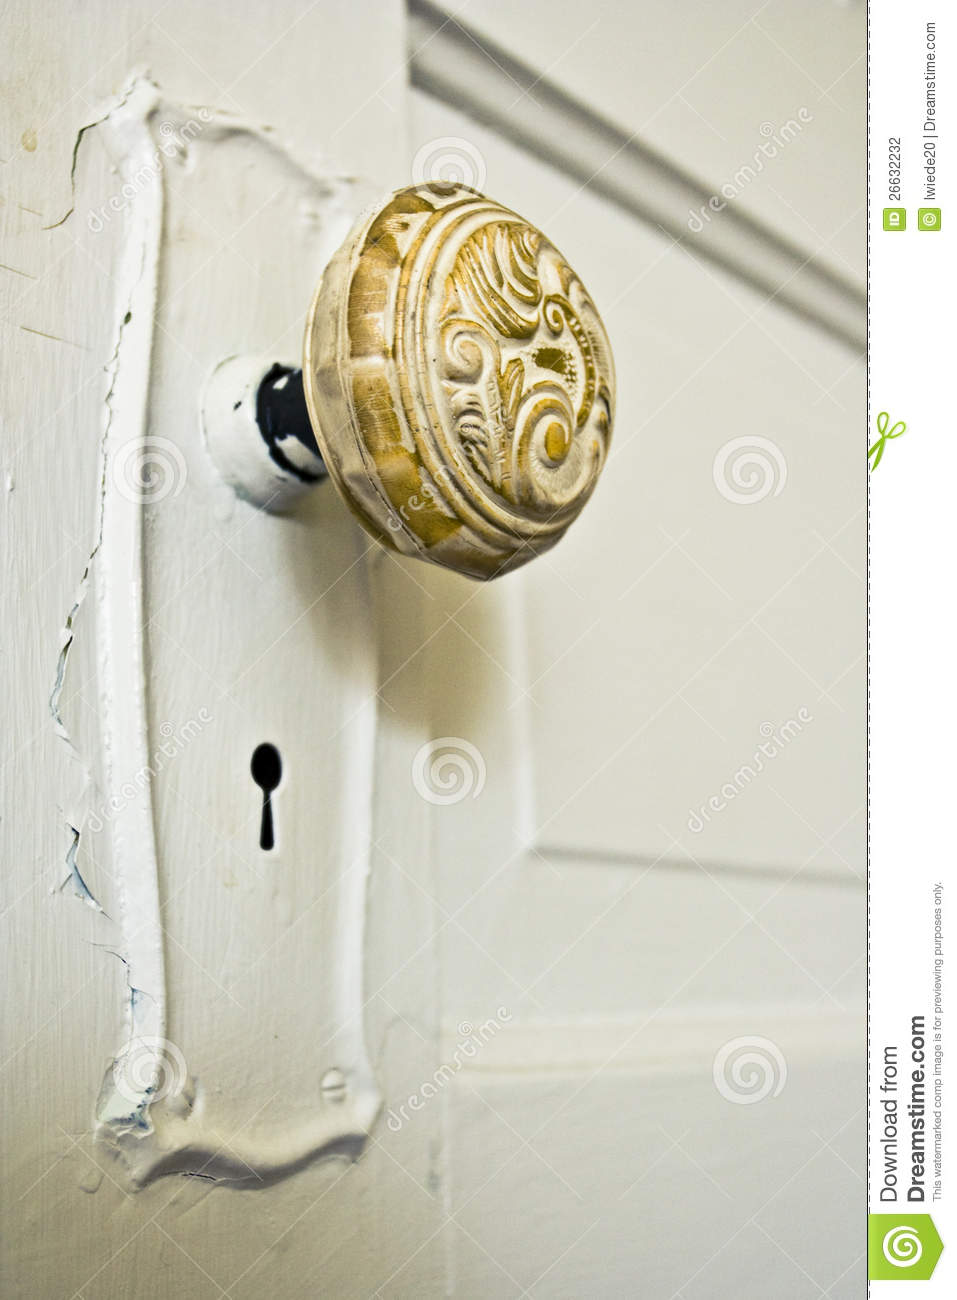 Vintage Door Knob Stock Photography  Image 26632232